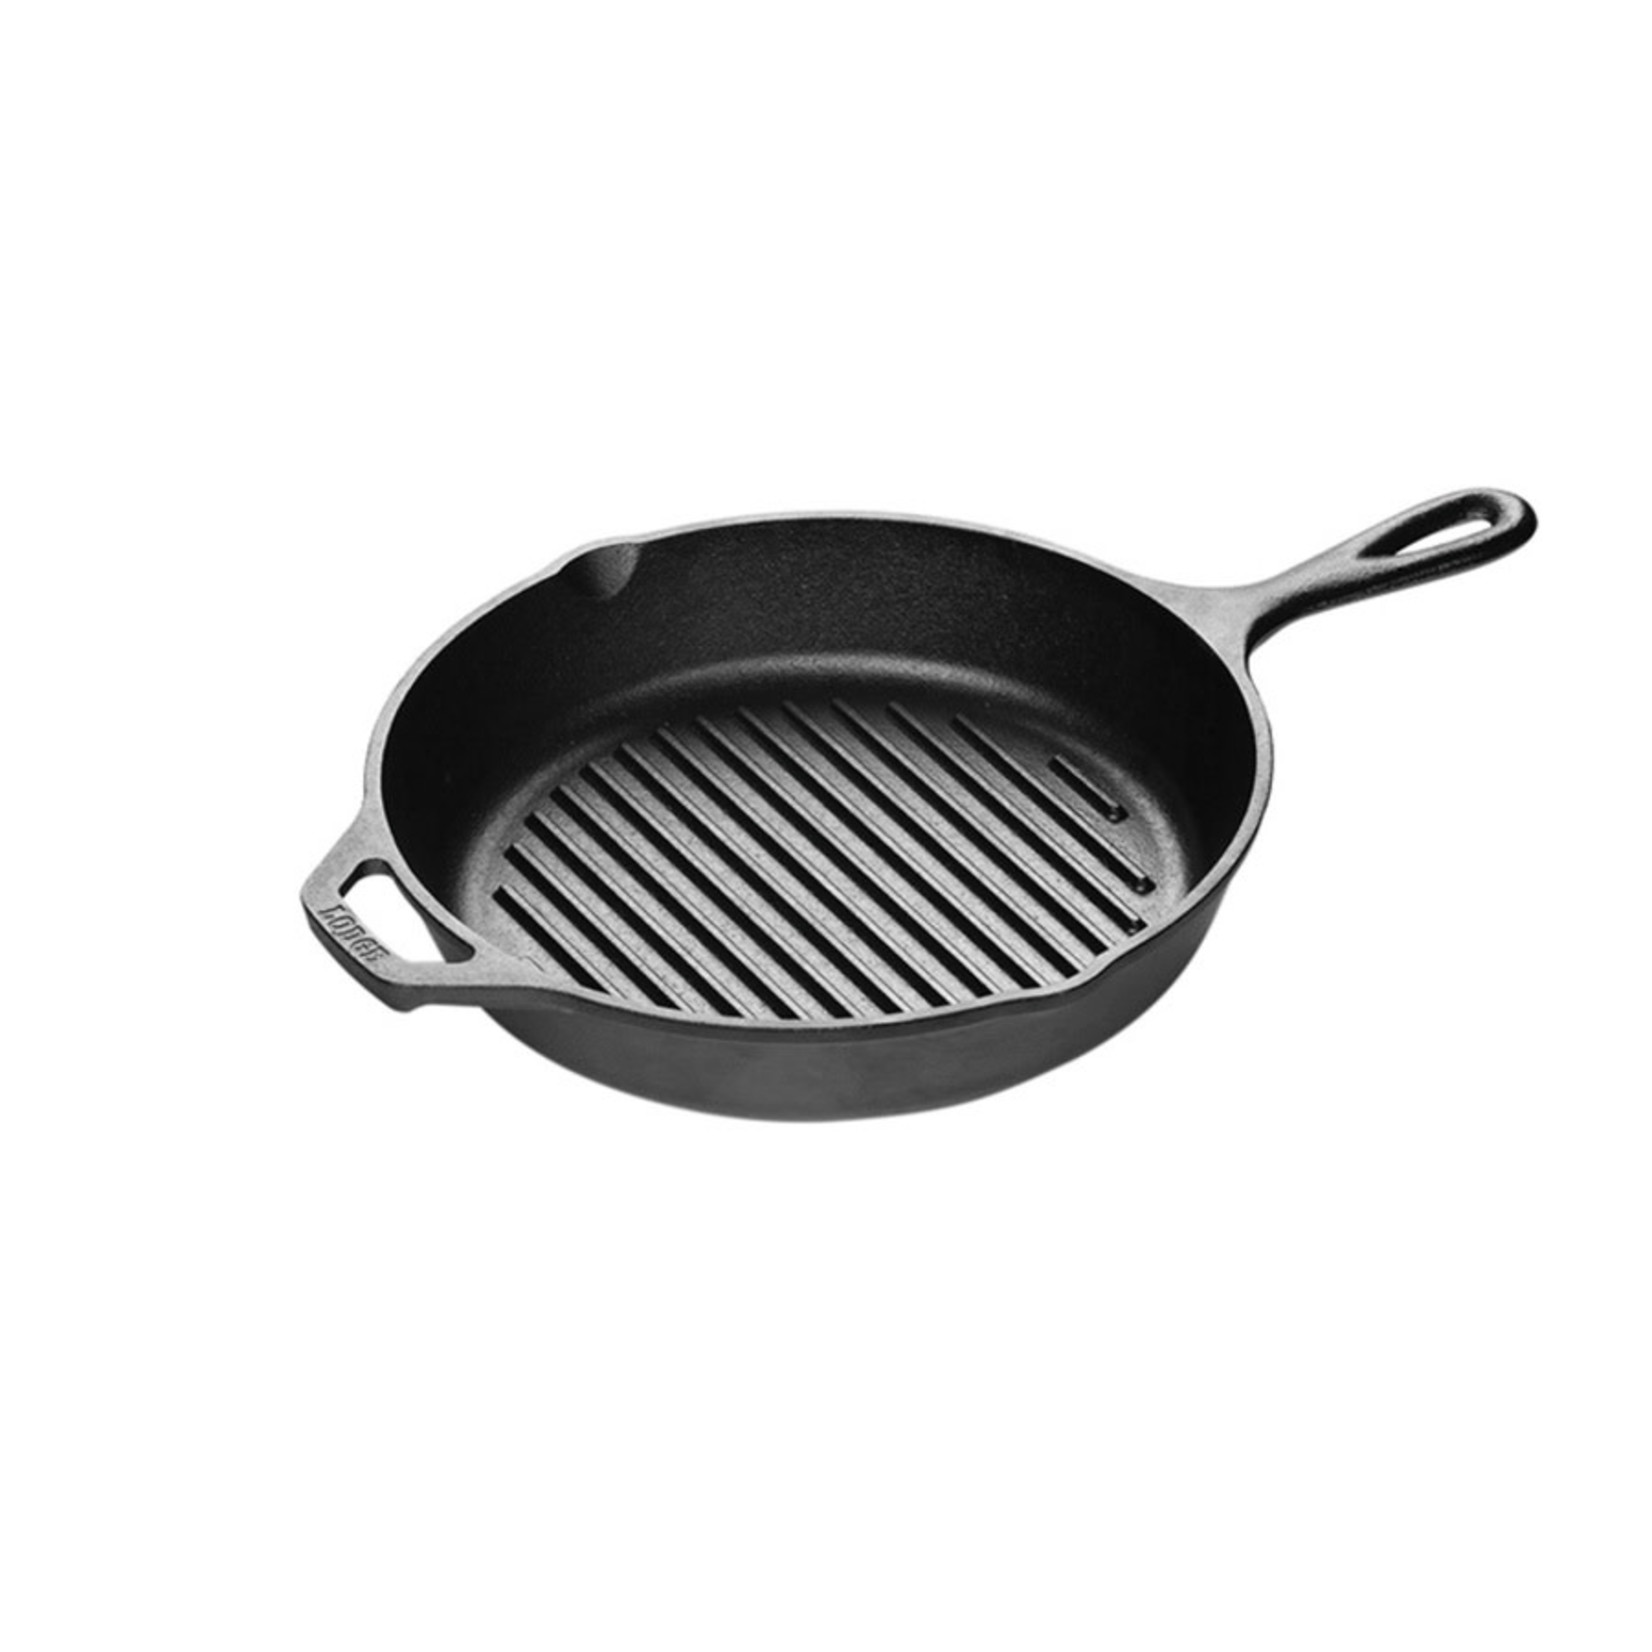 Lodge Lodge Cookware Grill Pan 10.5